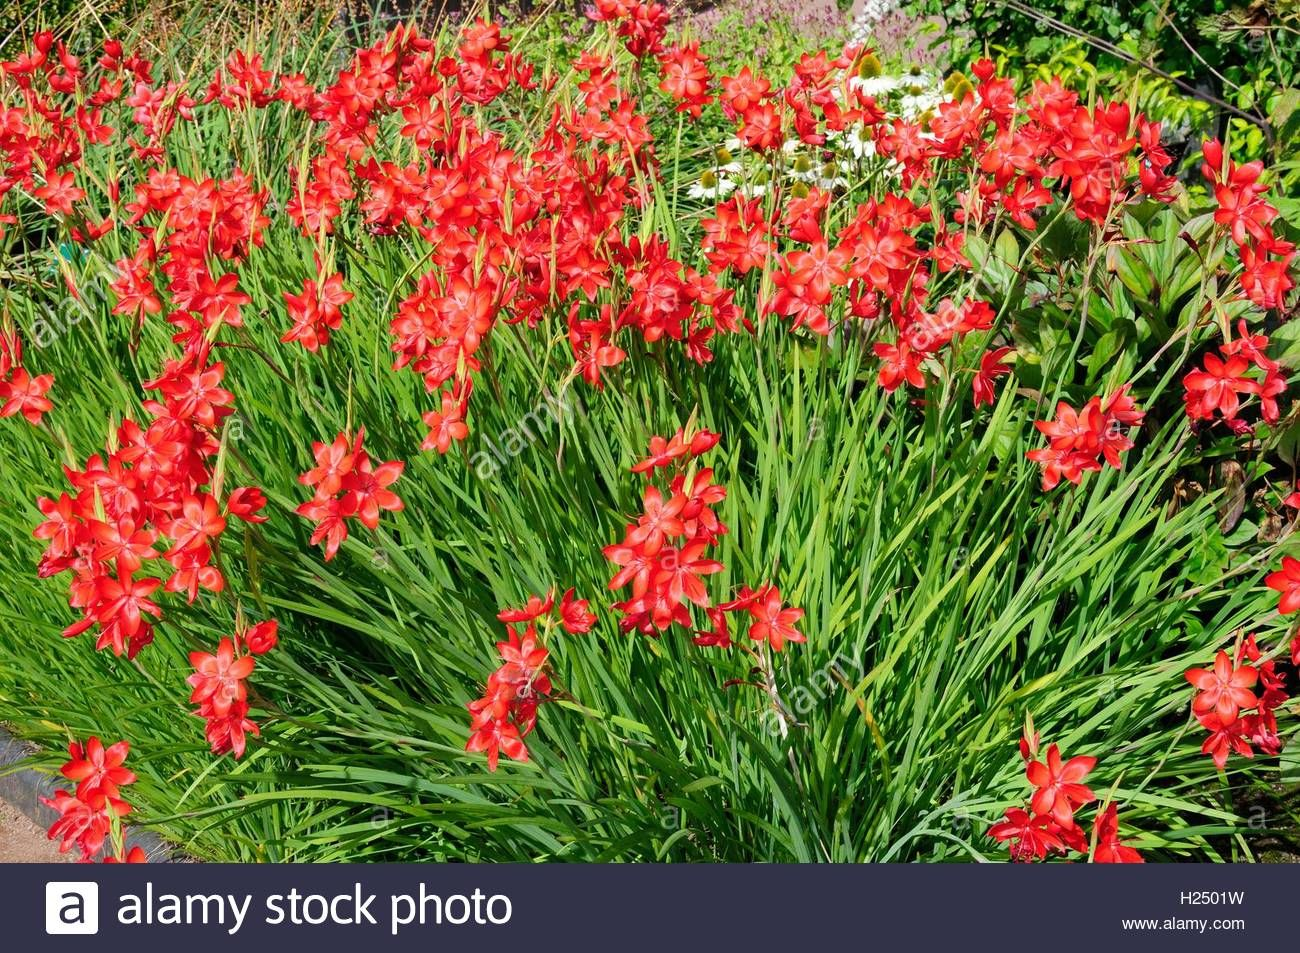 Hesperantha Coccinea Major Crimson Flag Lily Stock Photo Rain